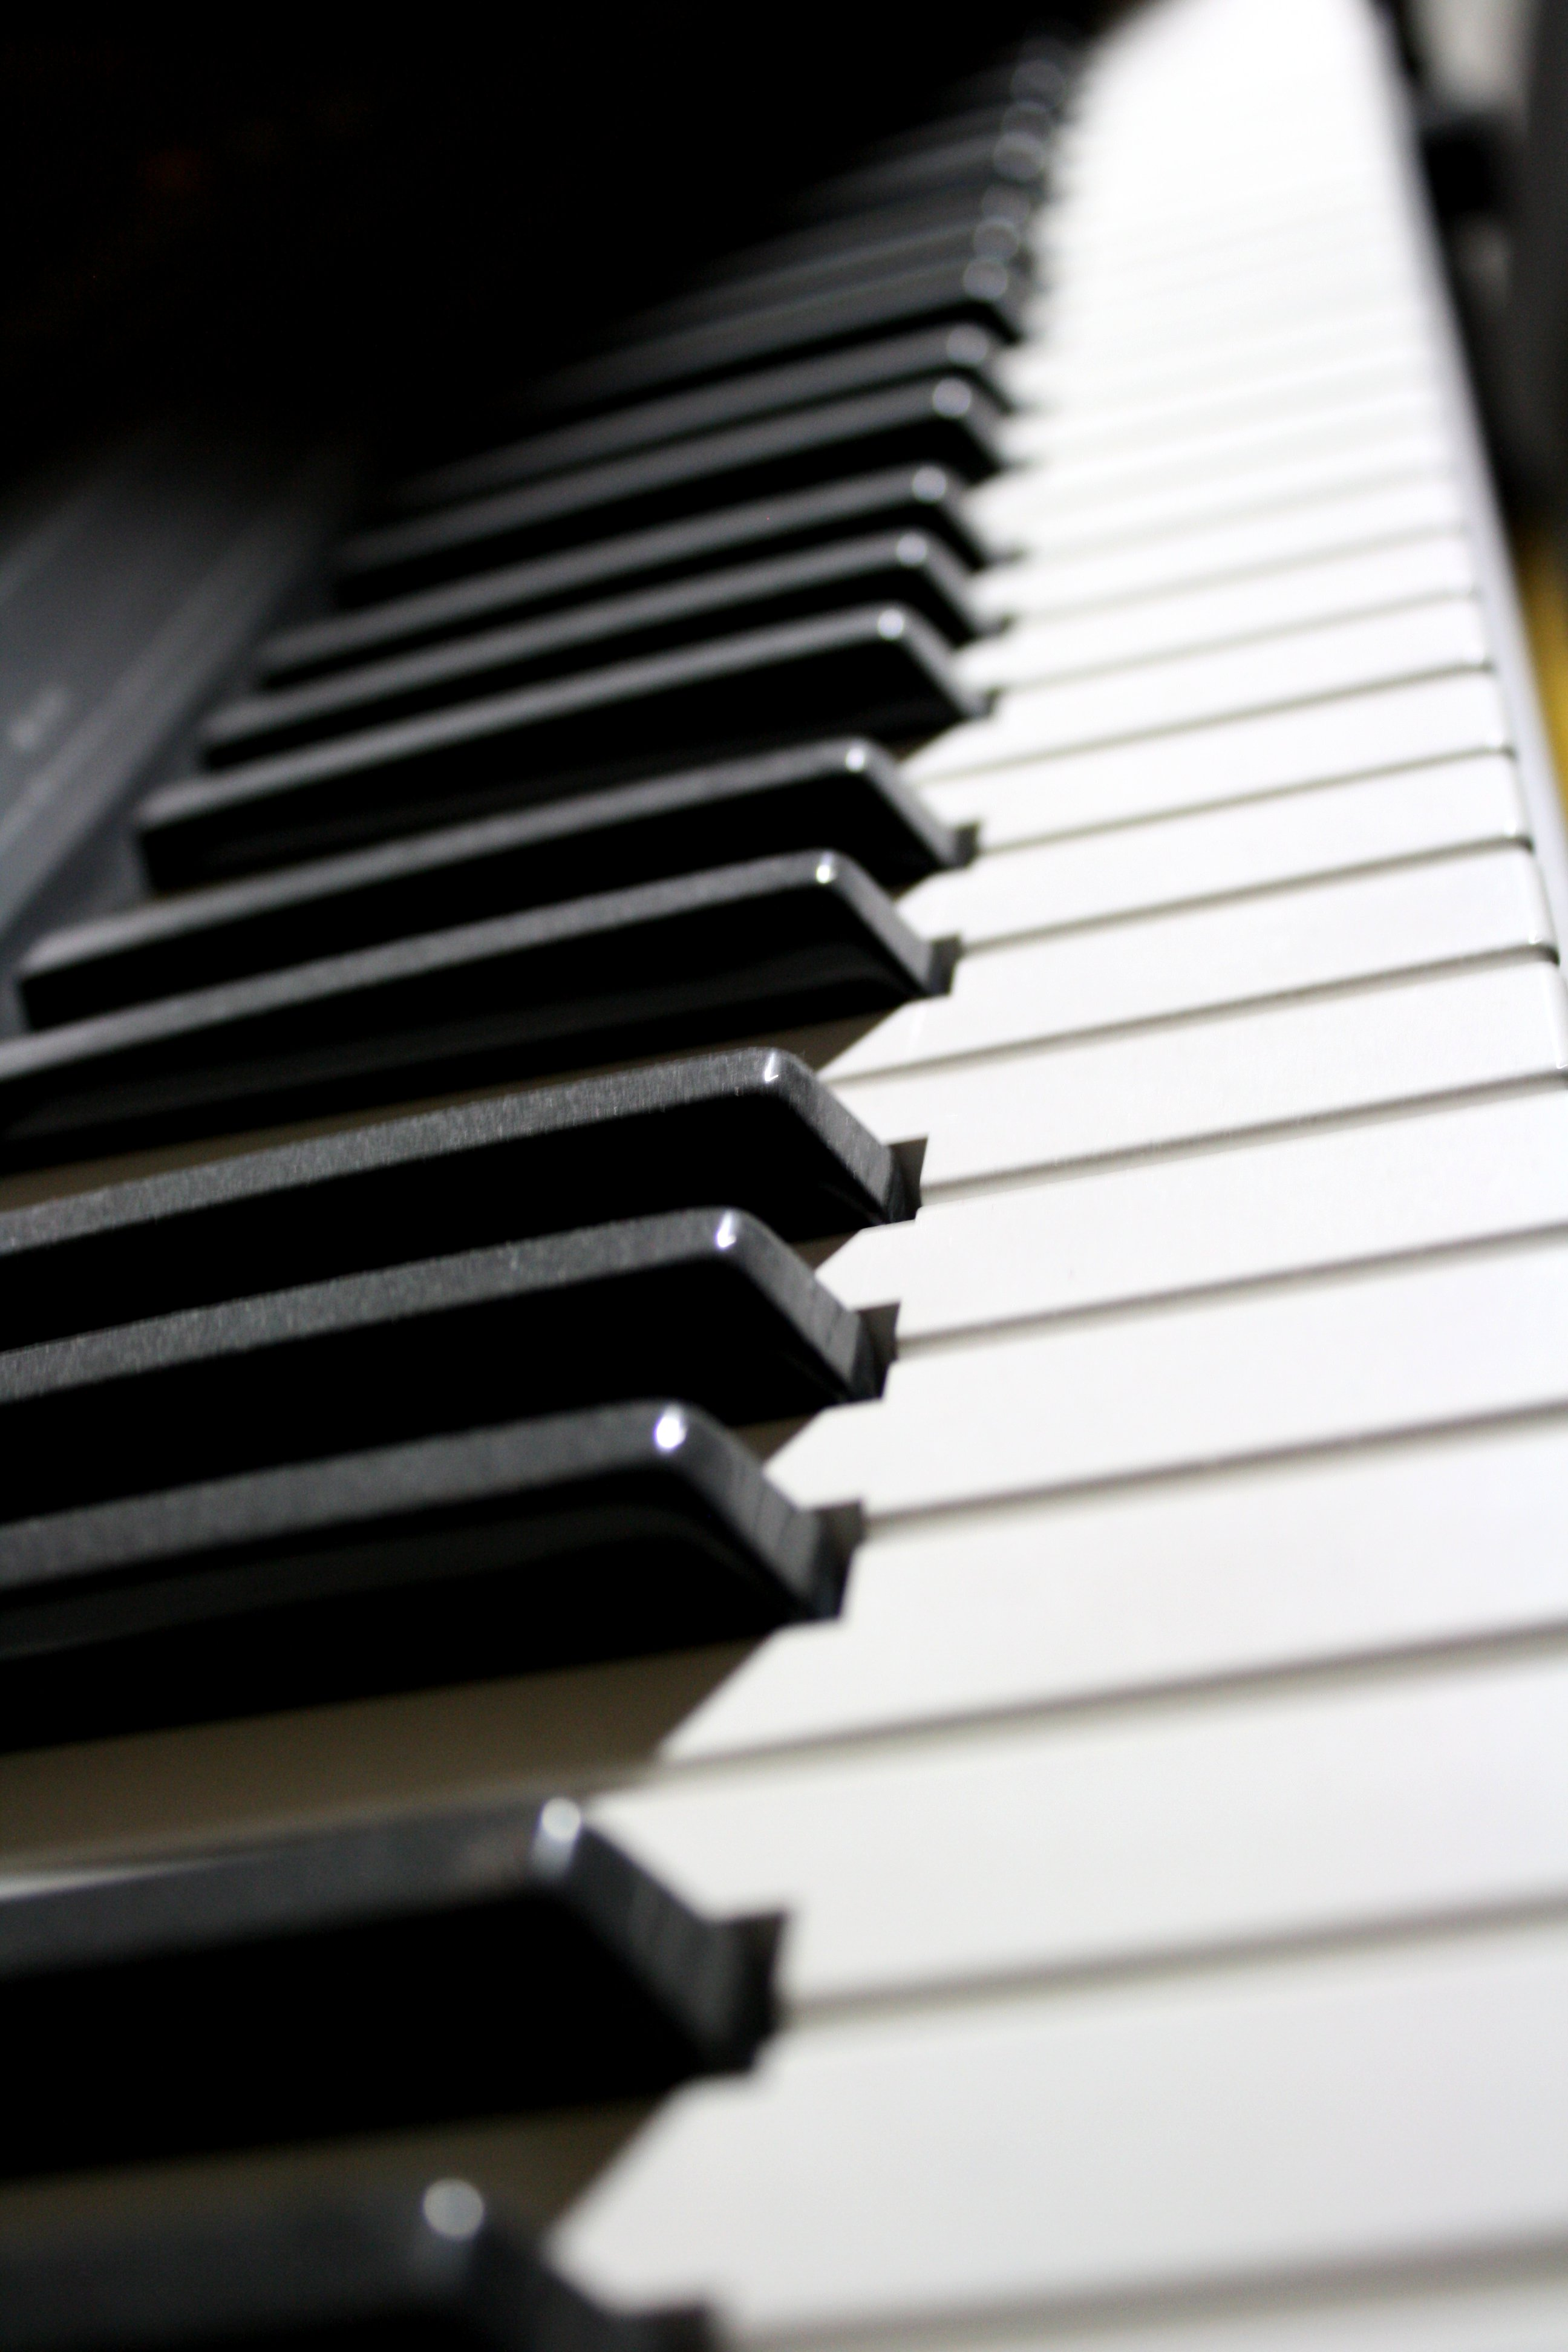 Electronic Piano Keyboard Picture Free Photograph Photos Public Domain